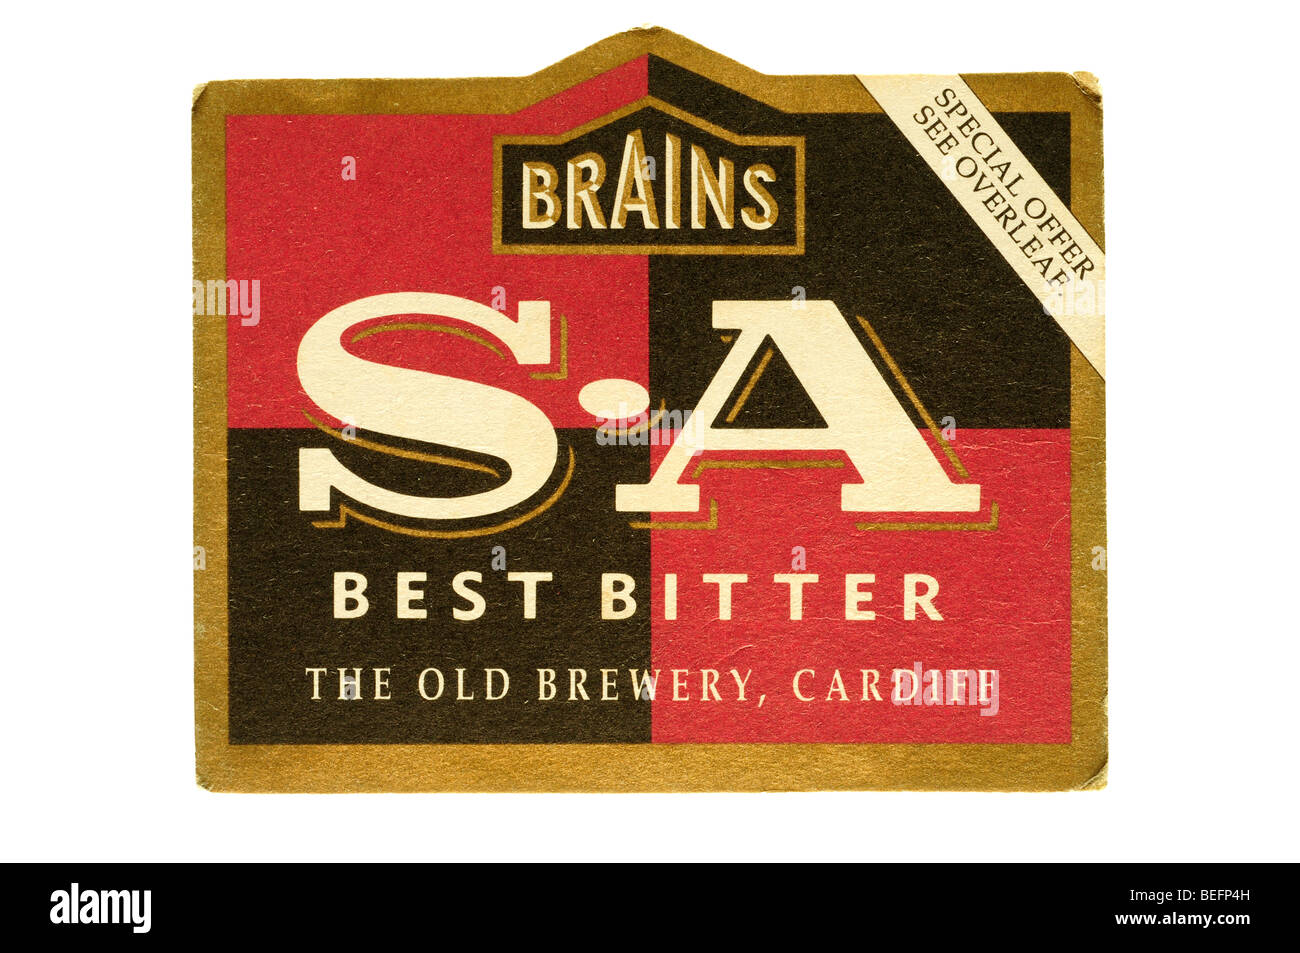 brains s a best bitter the old brewery cardiff - Stock Image